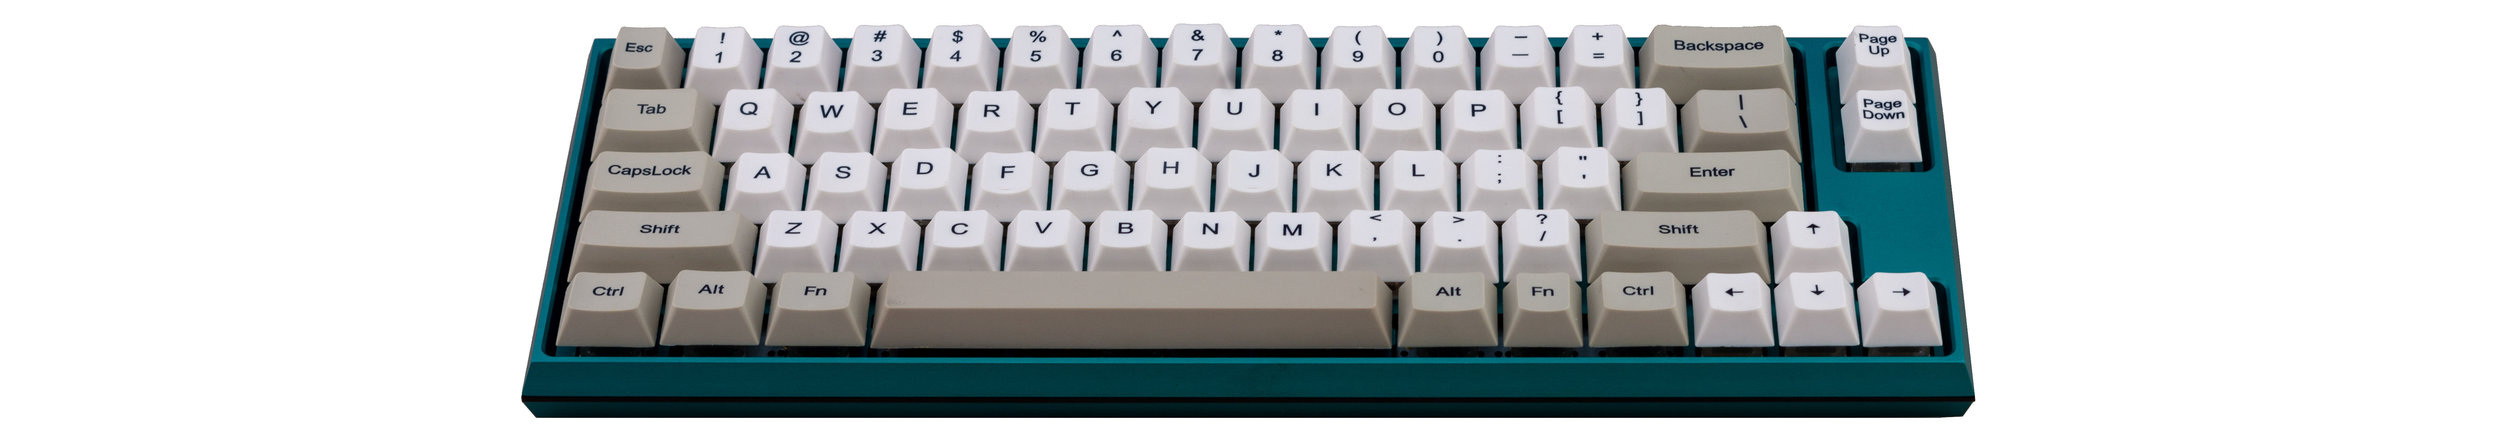 Clueboard 66% Aluminum Keyboard Kit - Teal